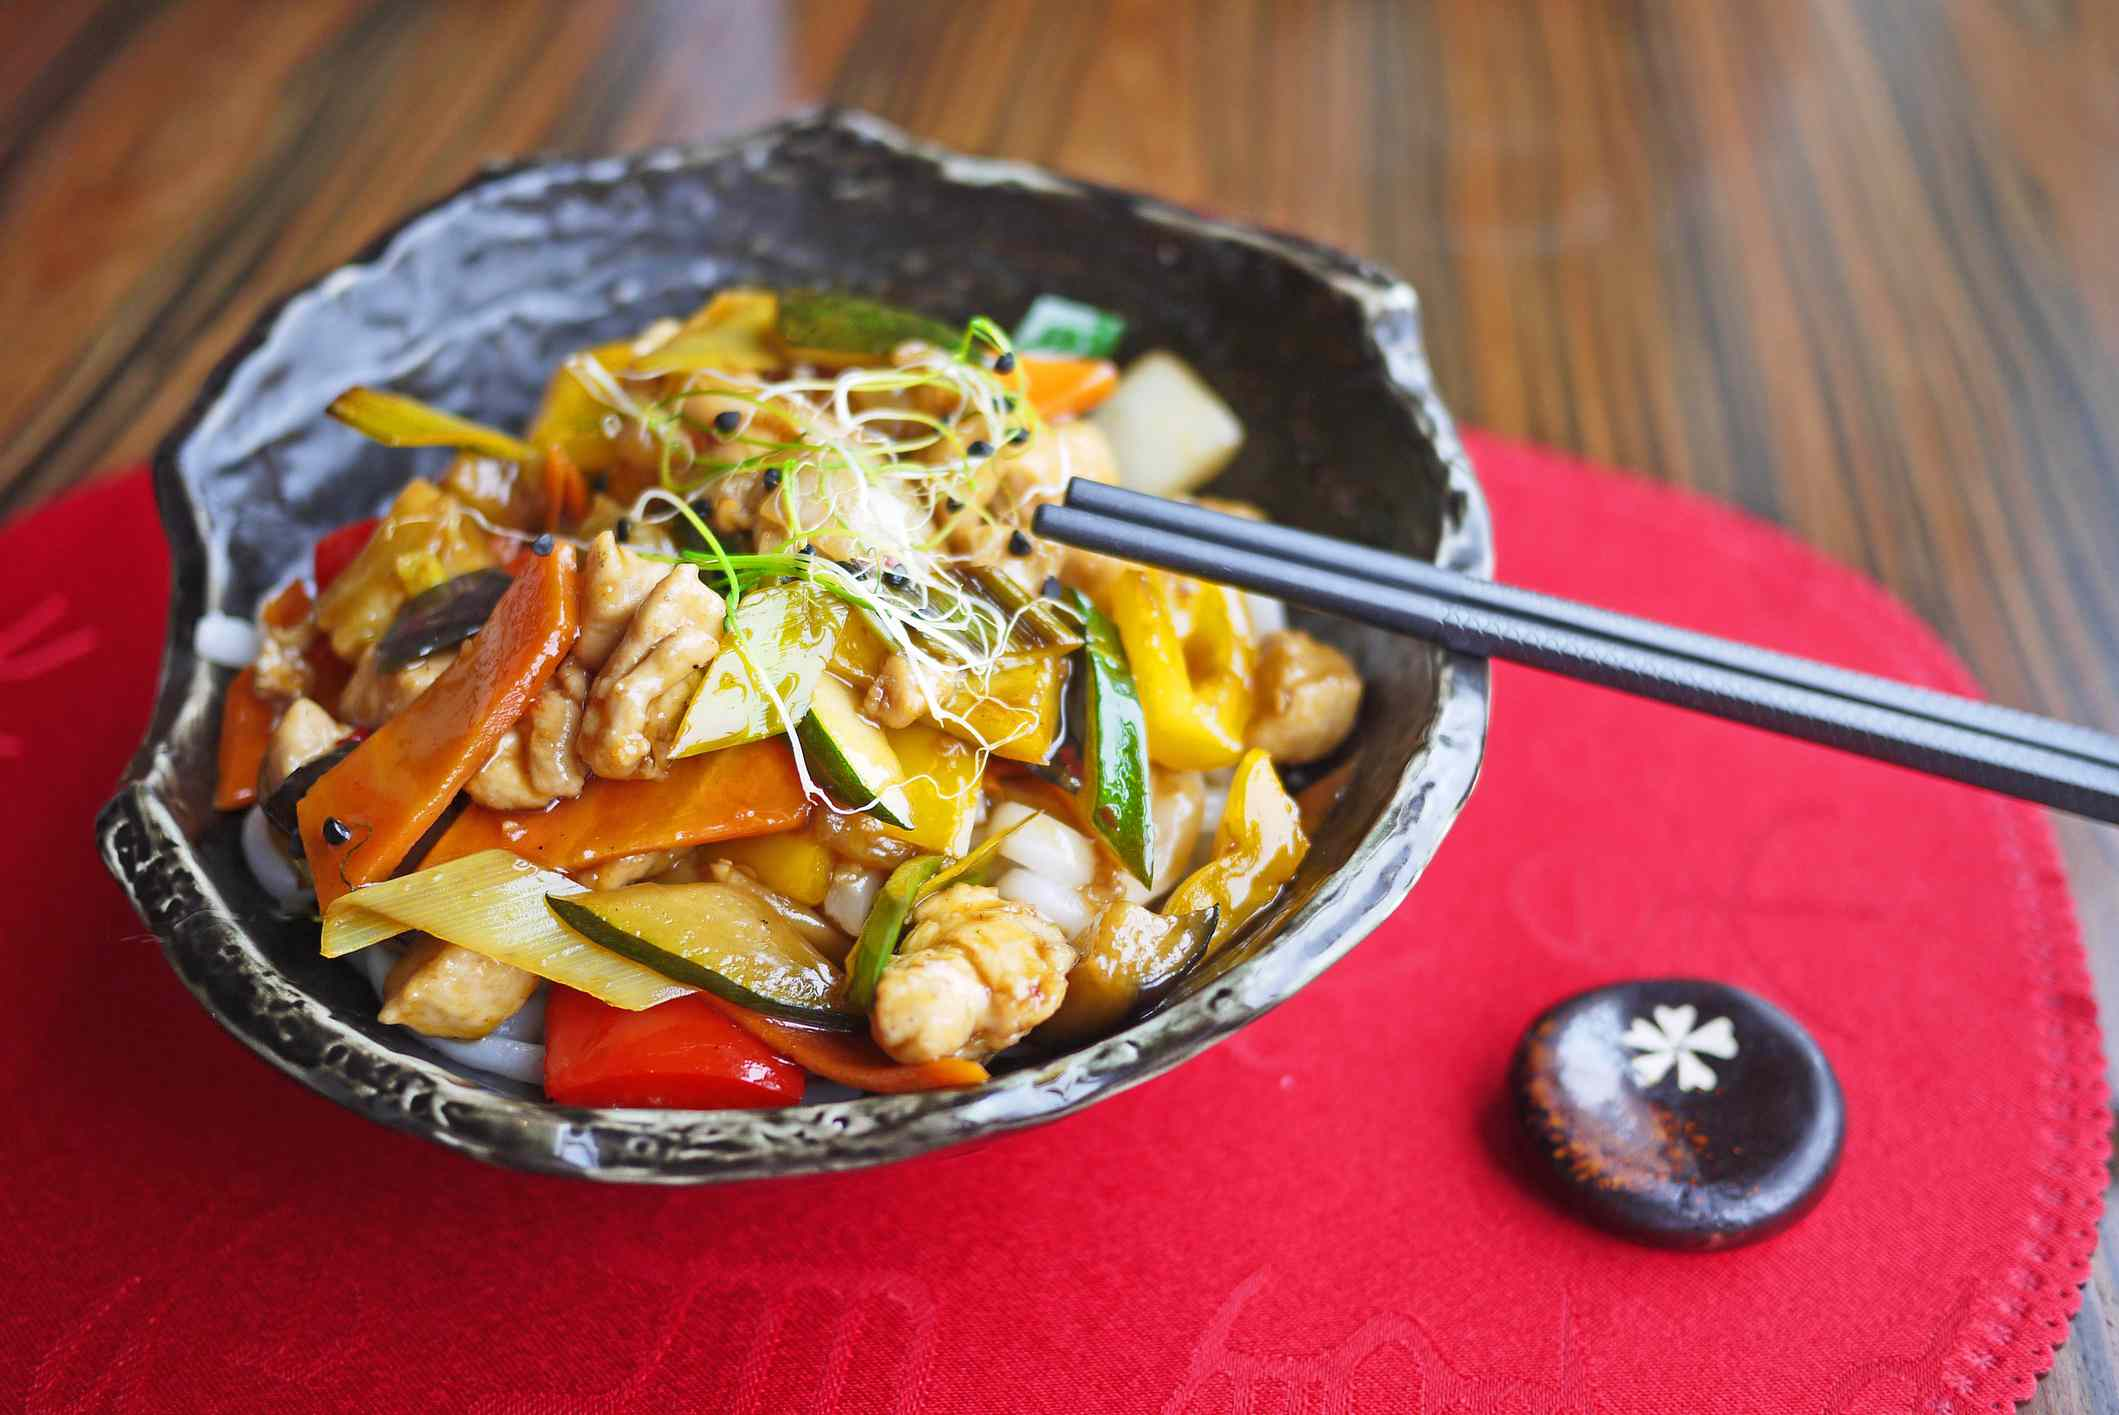 Bowl with Chinese noodles, vegetables and chicken.